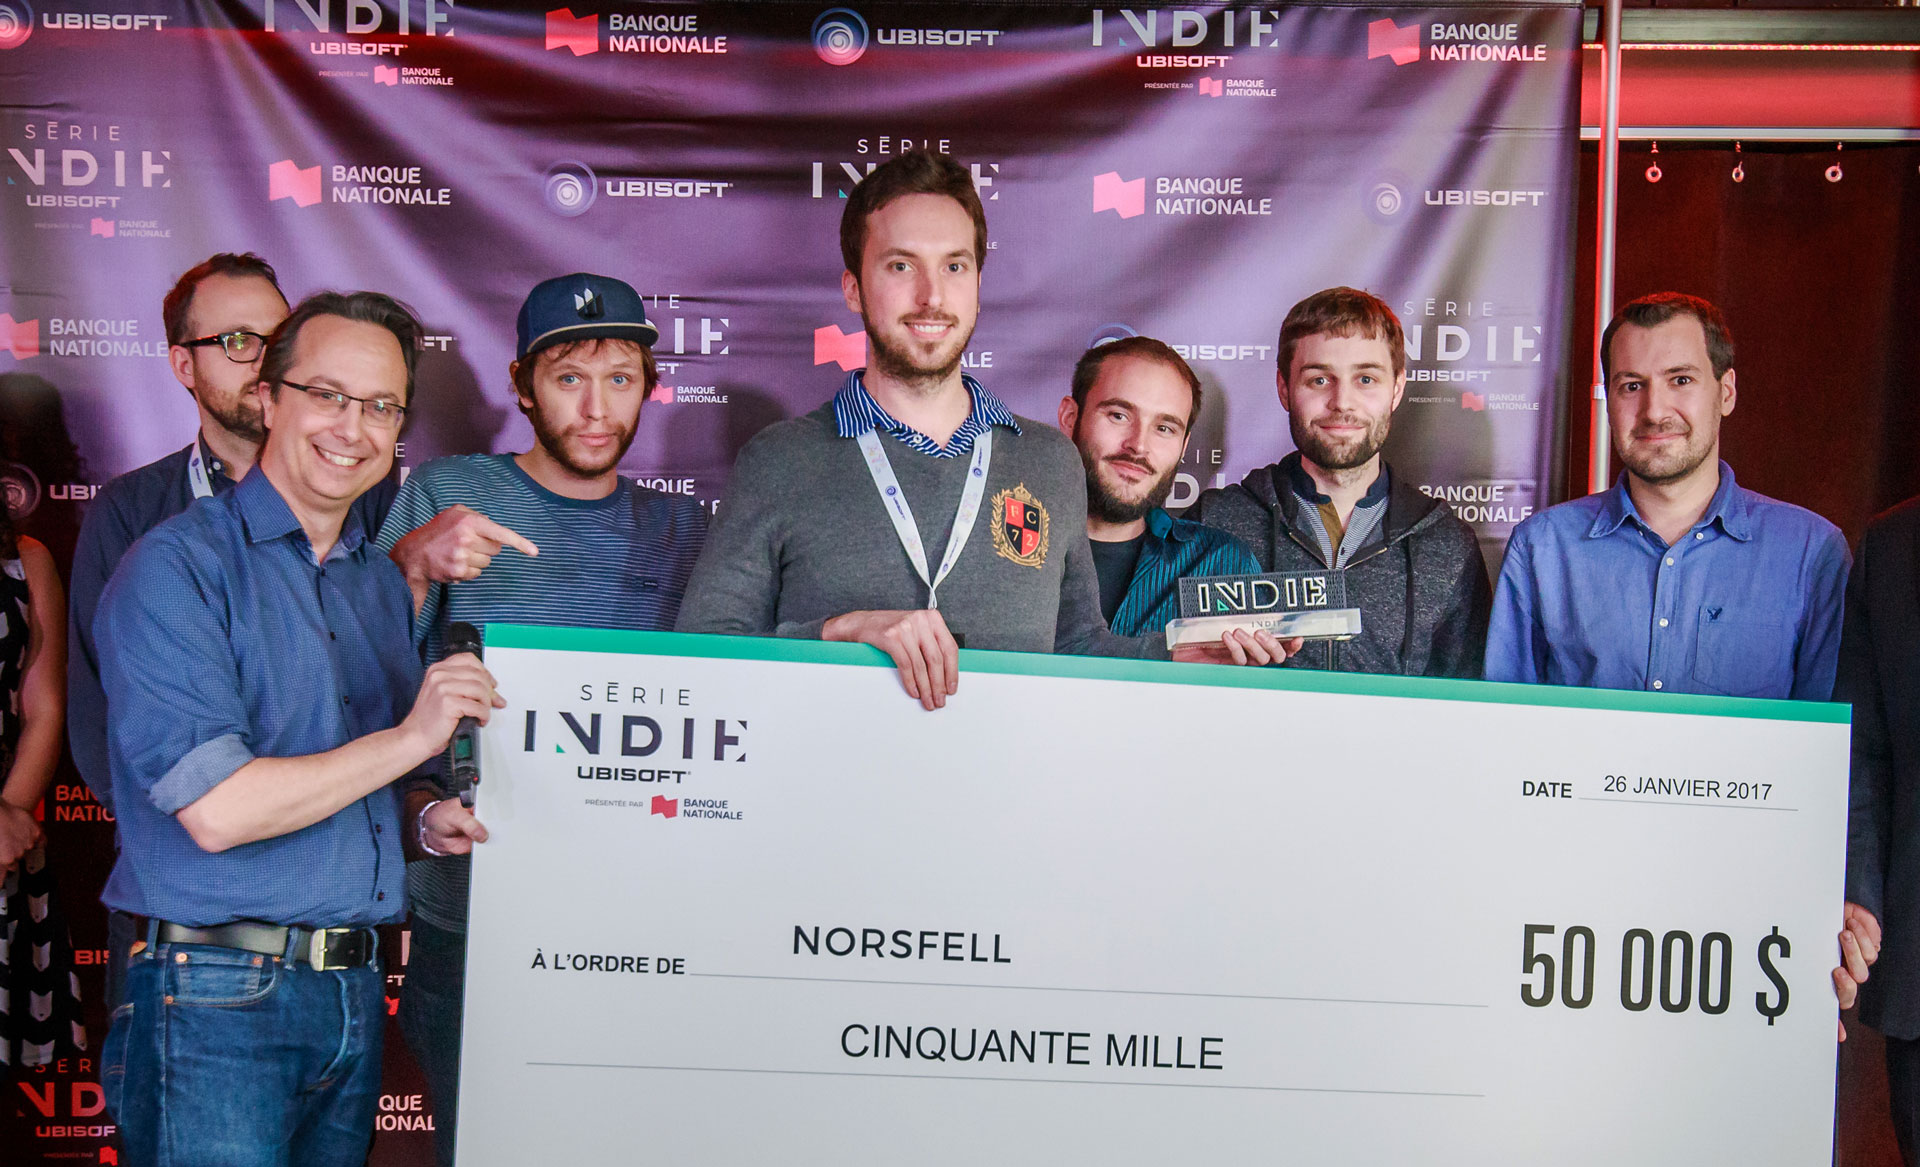 Interview with Norsfell – winners of the Ubisoft indie Series 2017